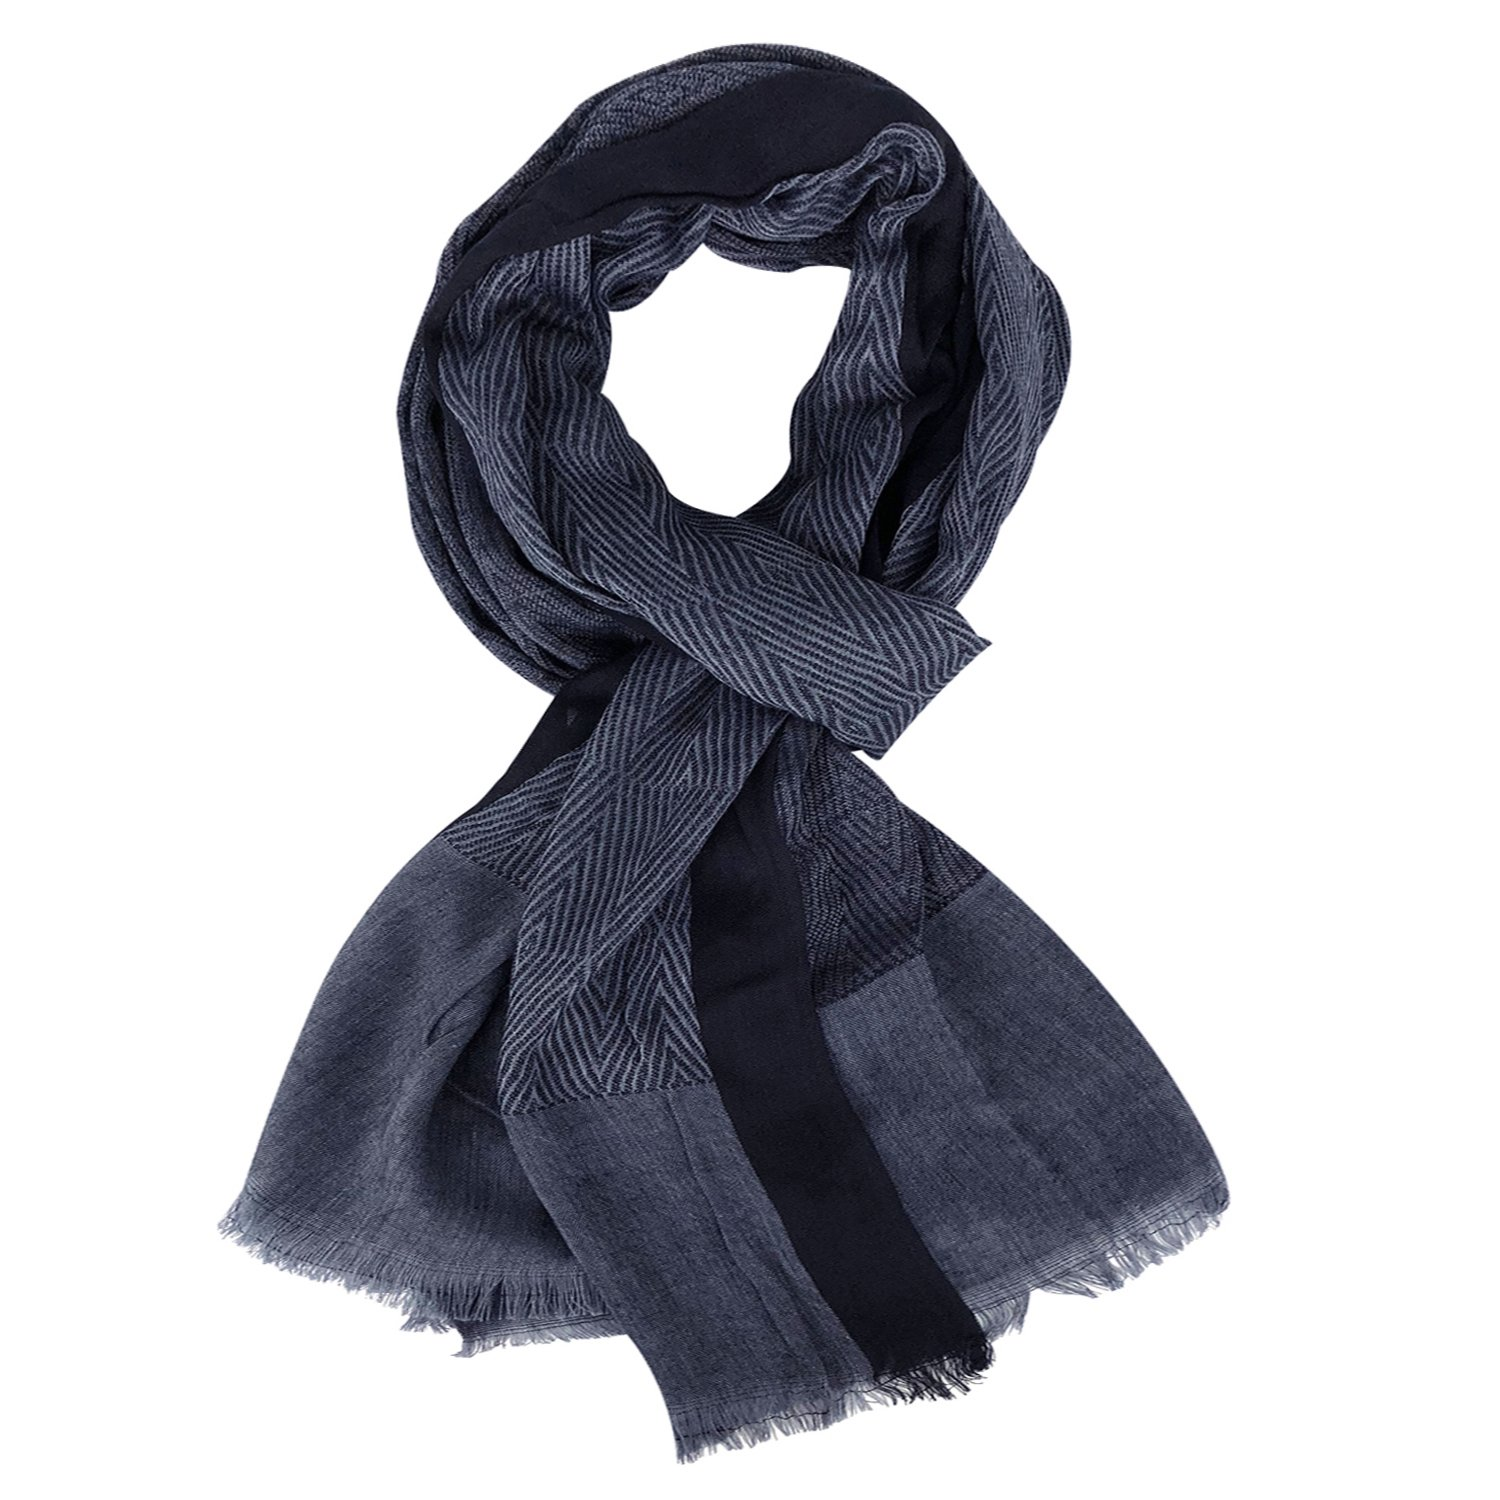 GERINLY Men Scarves Twill Cotton-Linen Long Winter Scarf (NavyBlue) by GERINLY (Image #1)